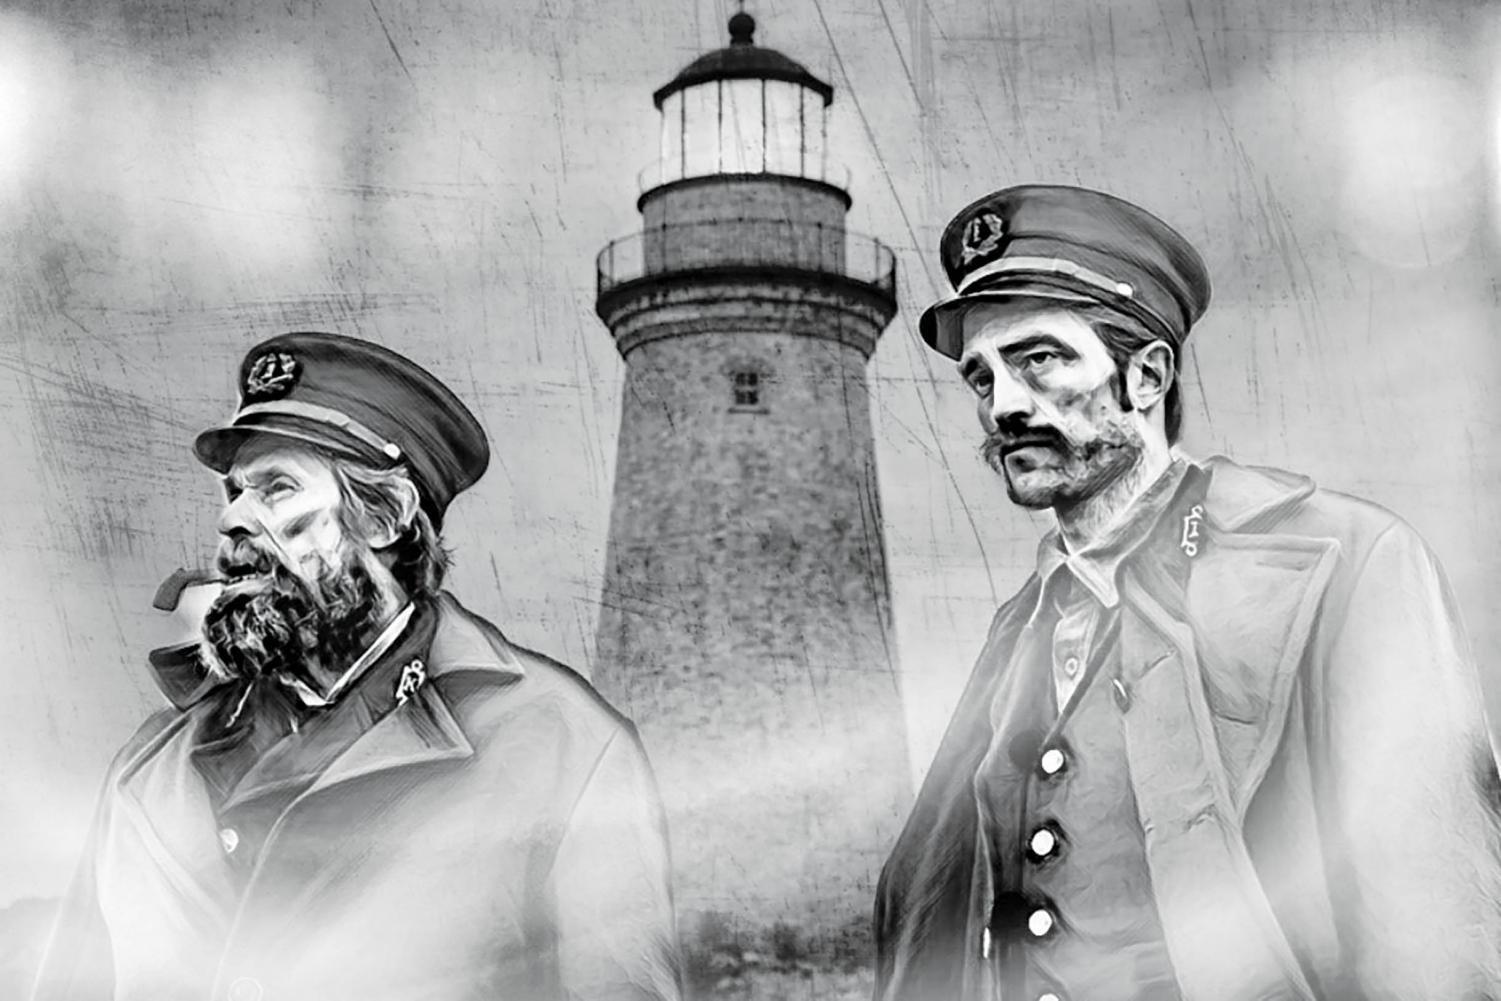 Willem Dafoe (left) and Robert Pattinson (right) star in 'The Lighthouse,' a psychological thriller. The film was released on Oct. 18.